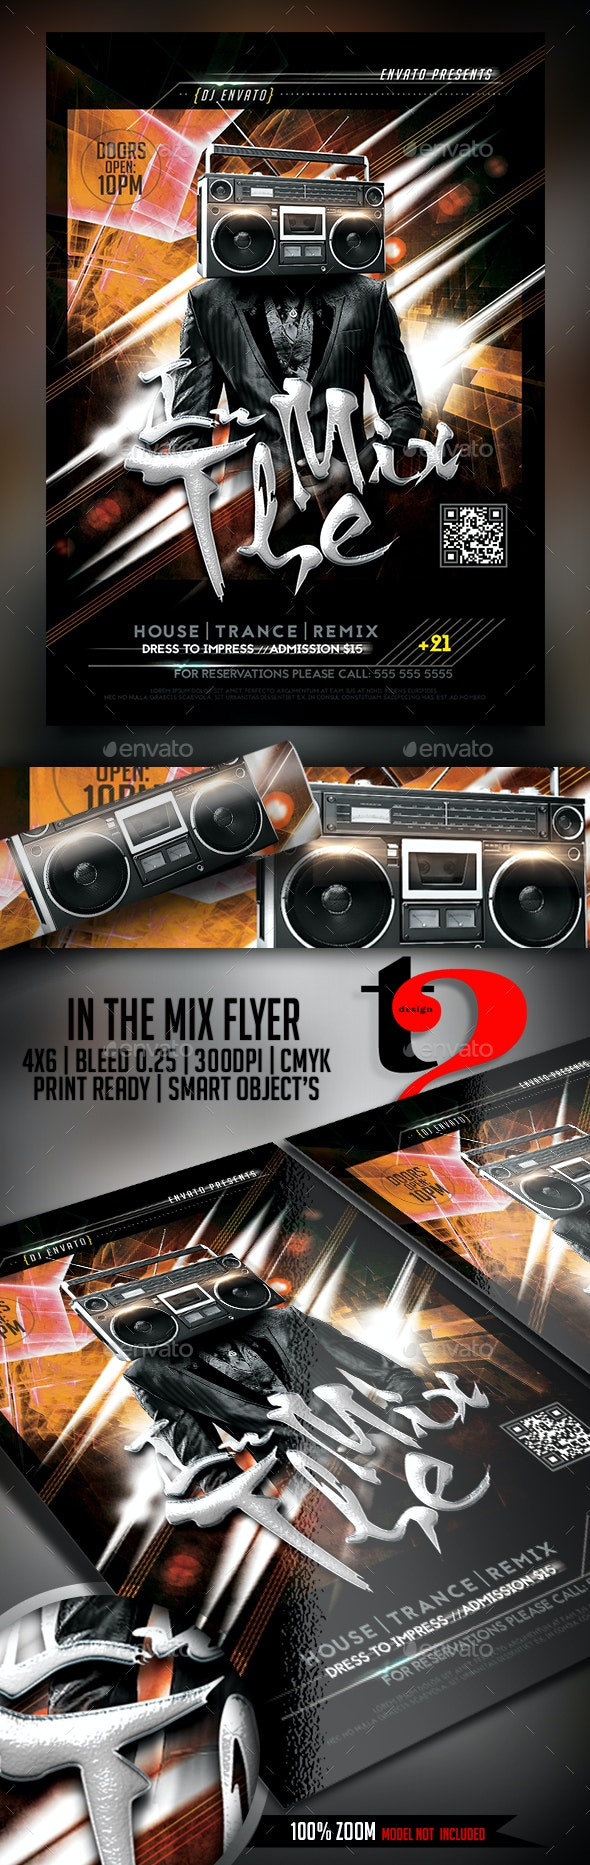 In The Mix Flyer Template - Clubs & Parties Events